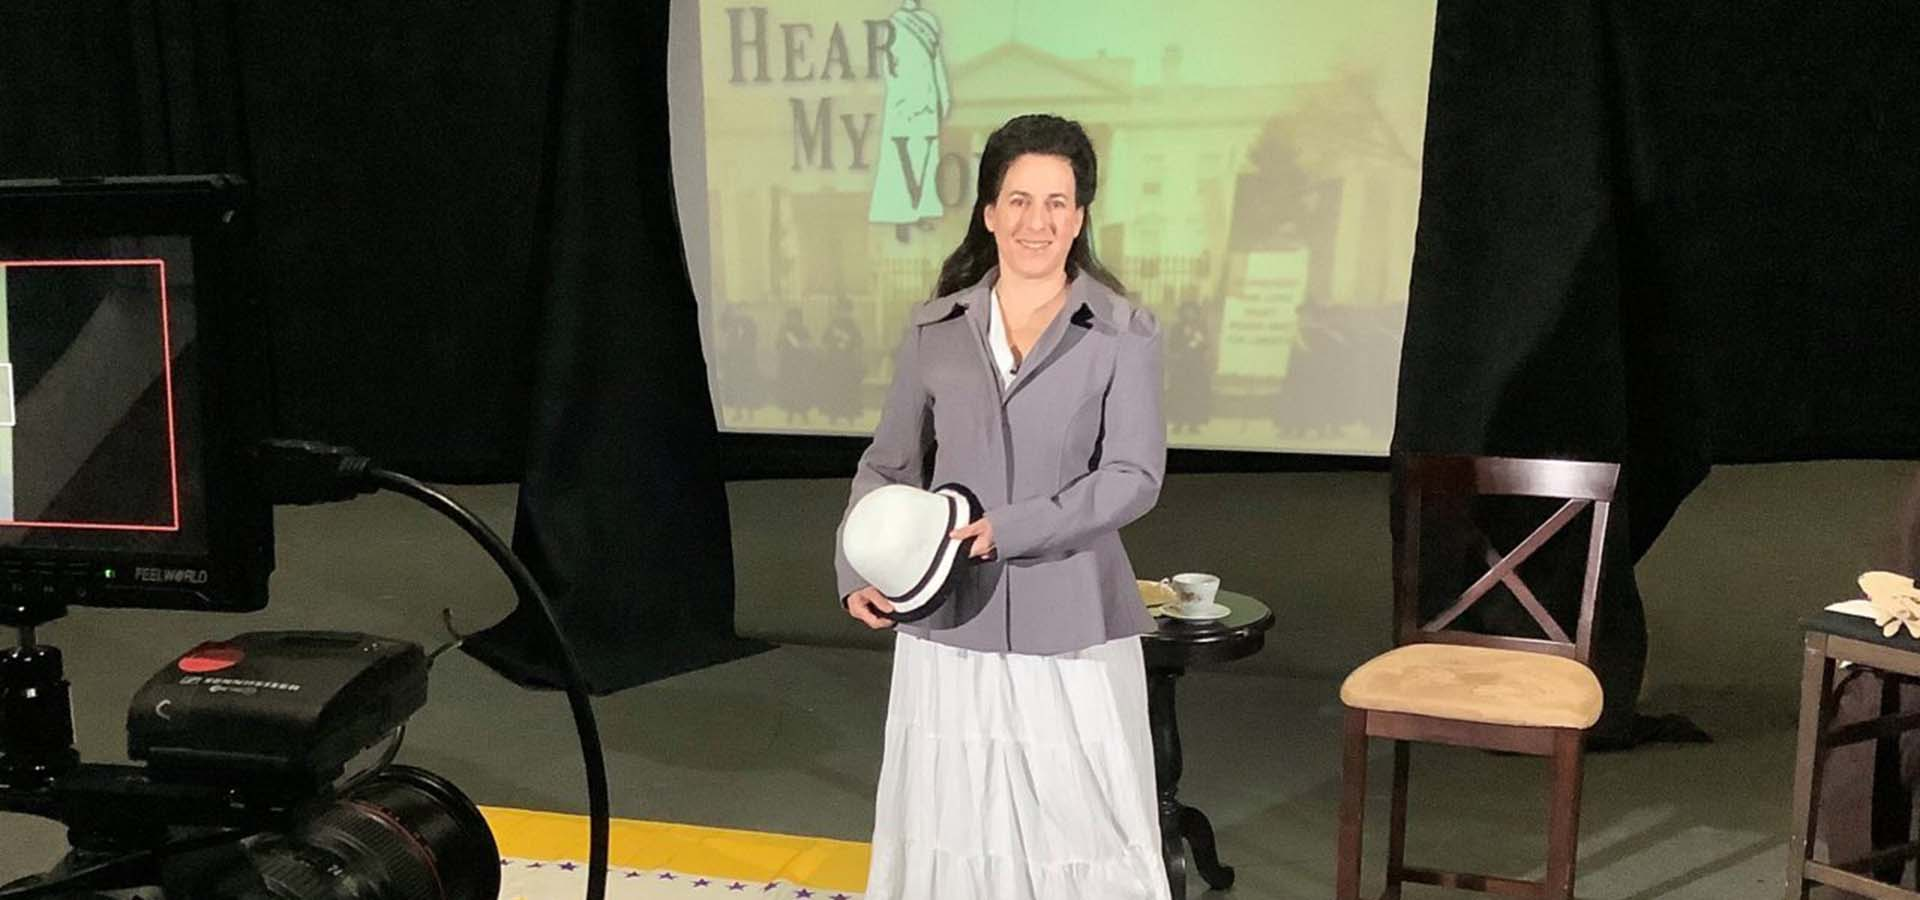 Women presenter in classroom setting holding a white hat